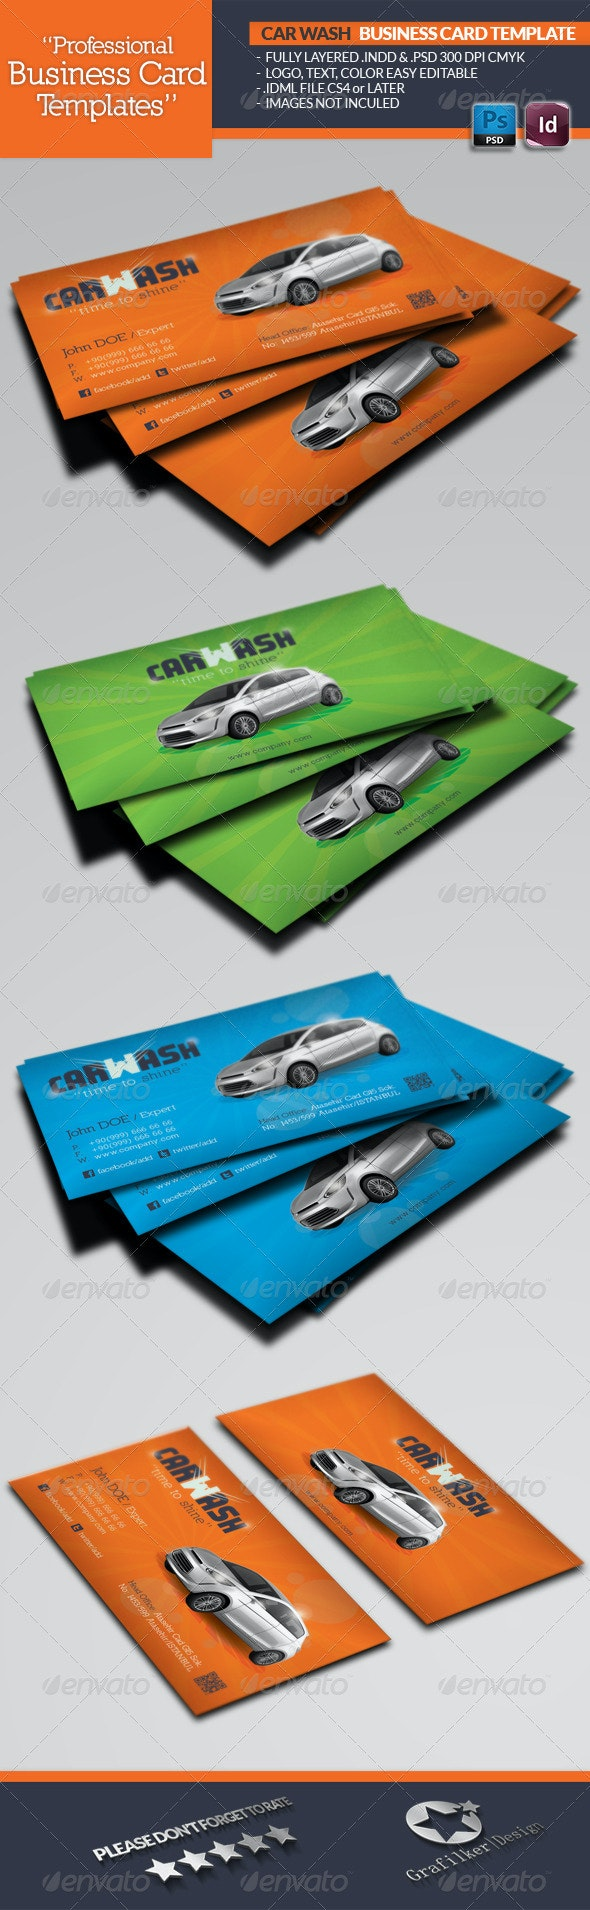 Car Wash Business Card Template - Business Cards Print Templates